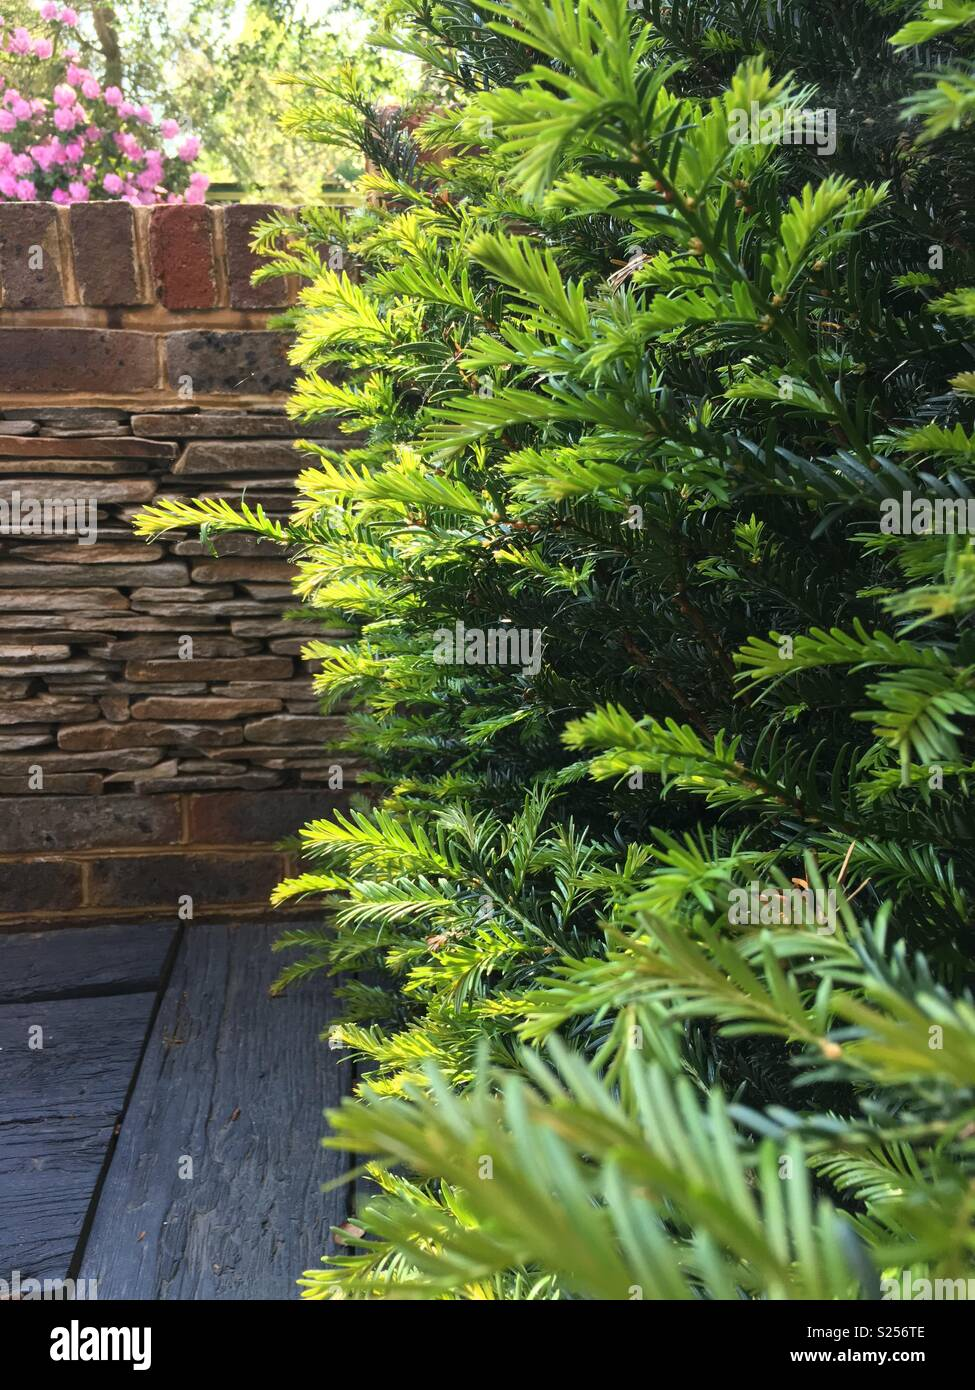 New growth of Yew hedge - Stock Image